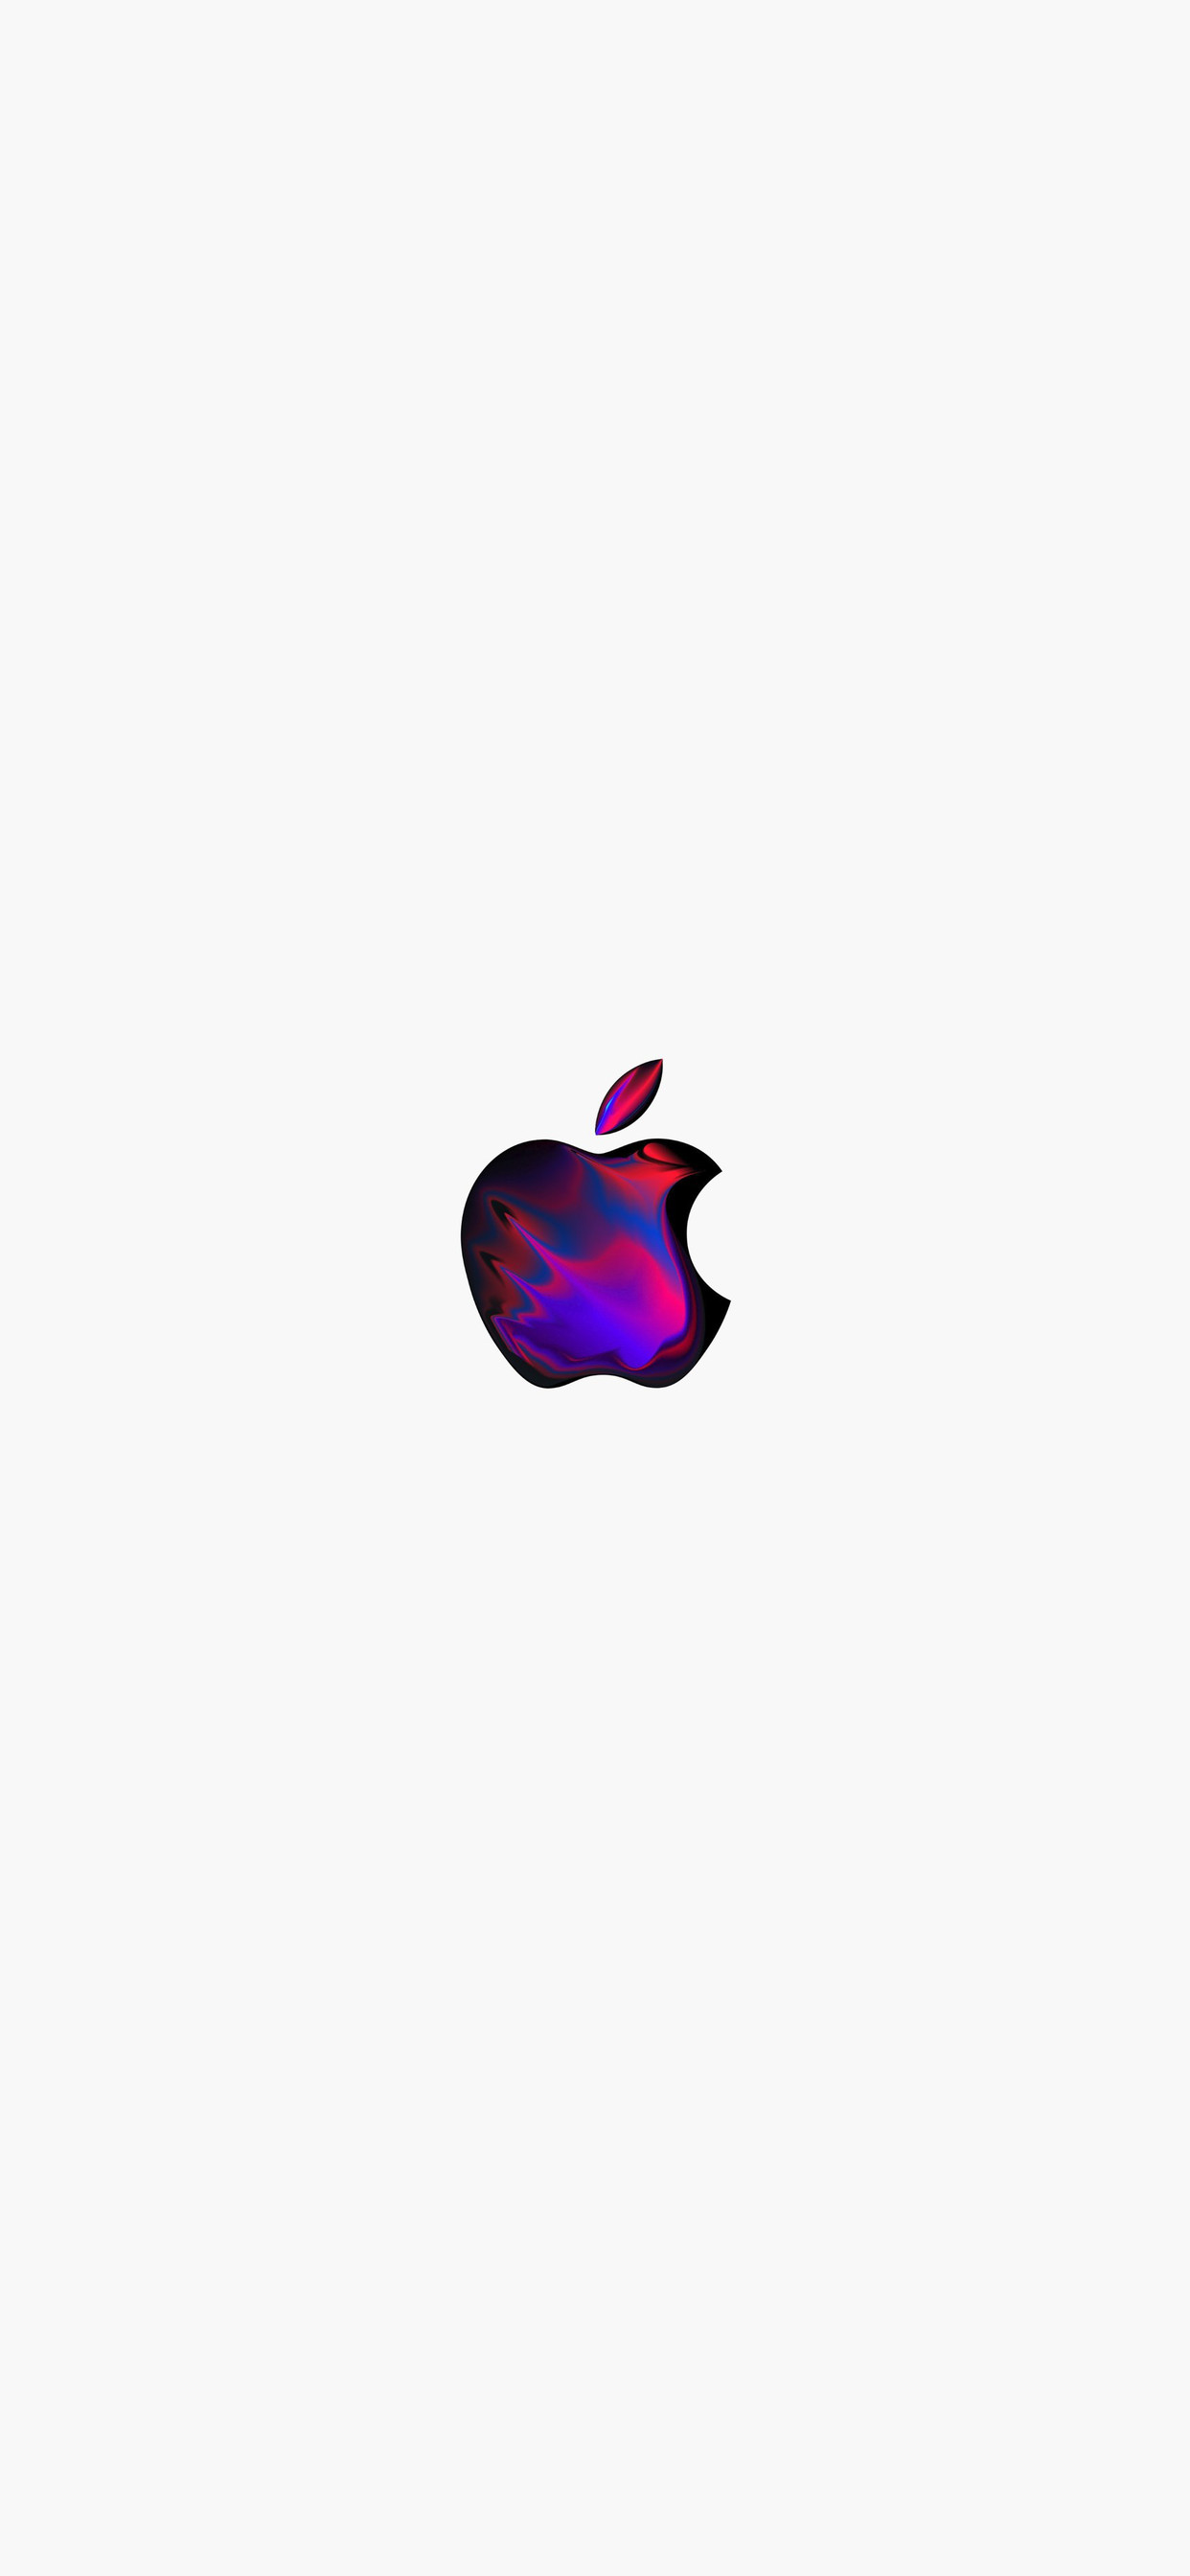 Apple Logo Wallpaper For Iphone X 8 7 6 Free Download On